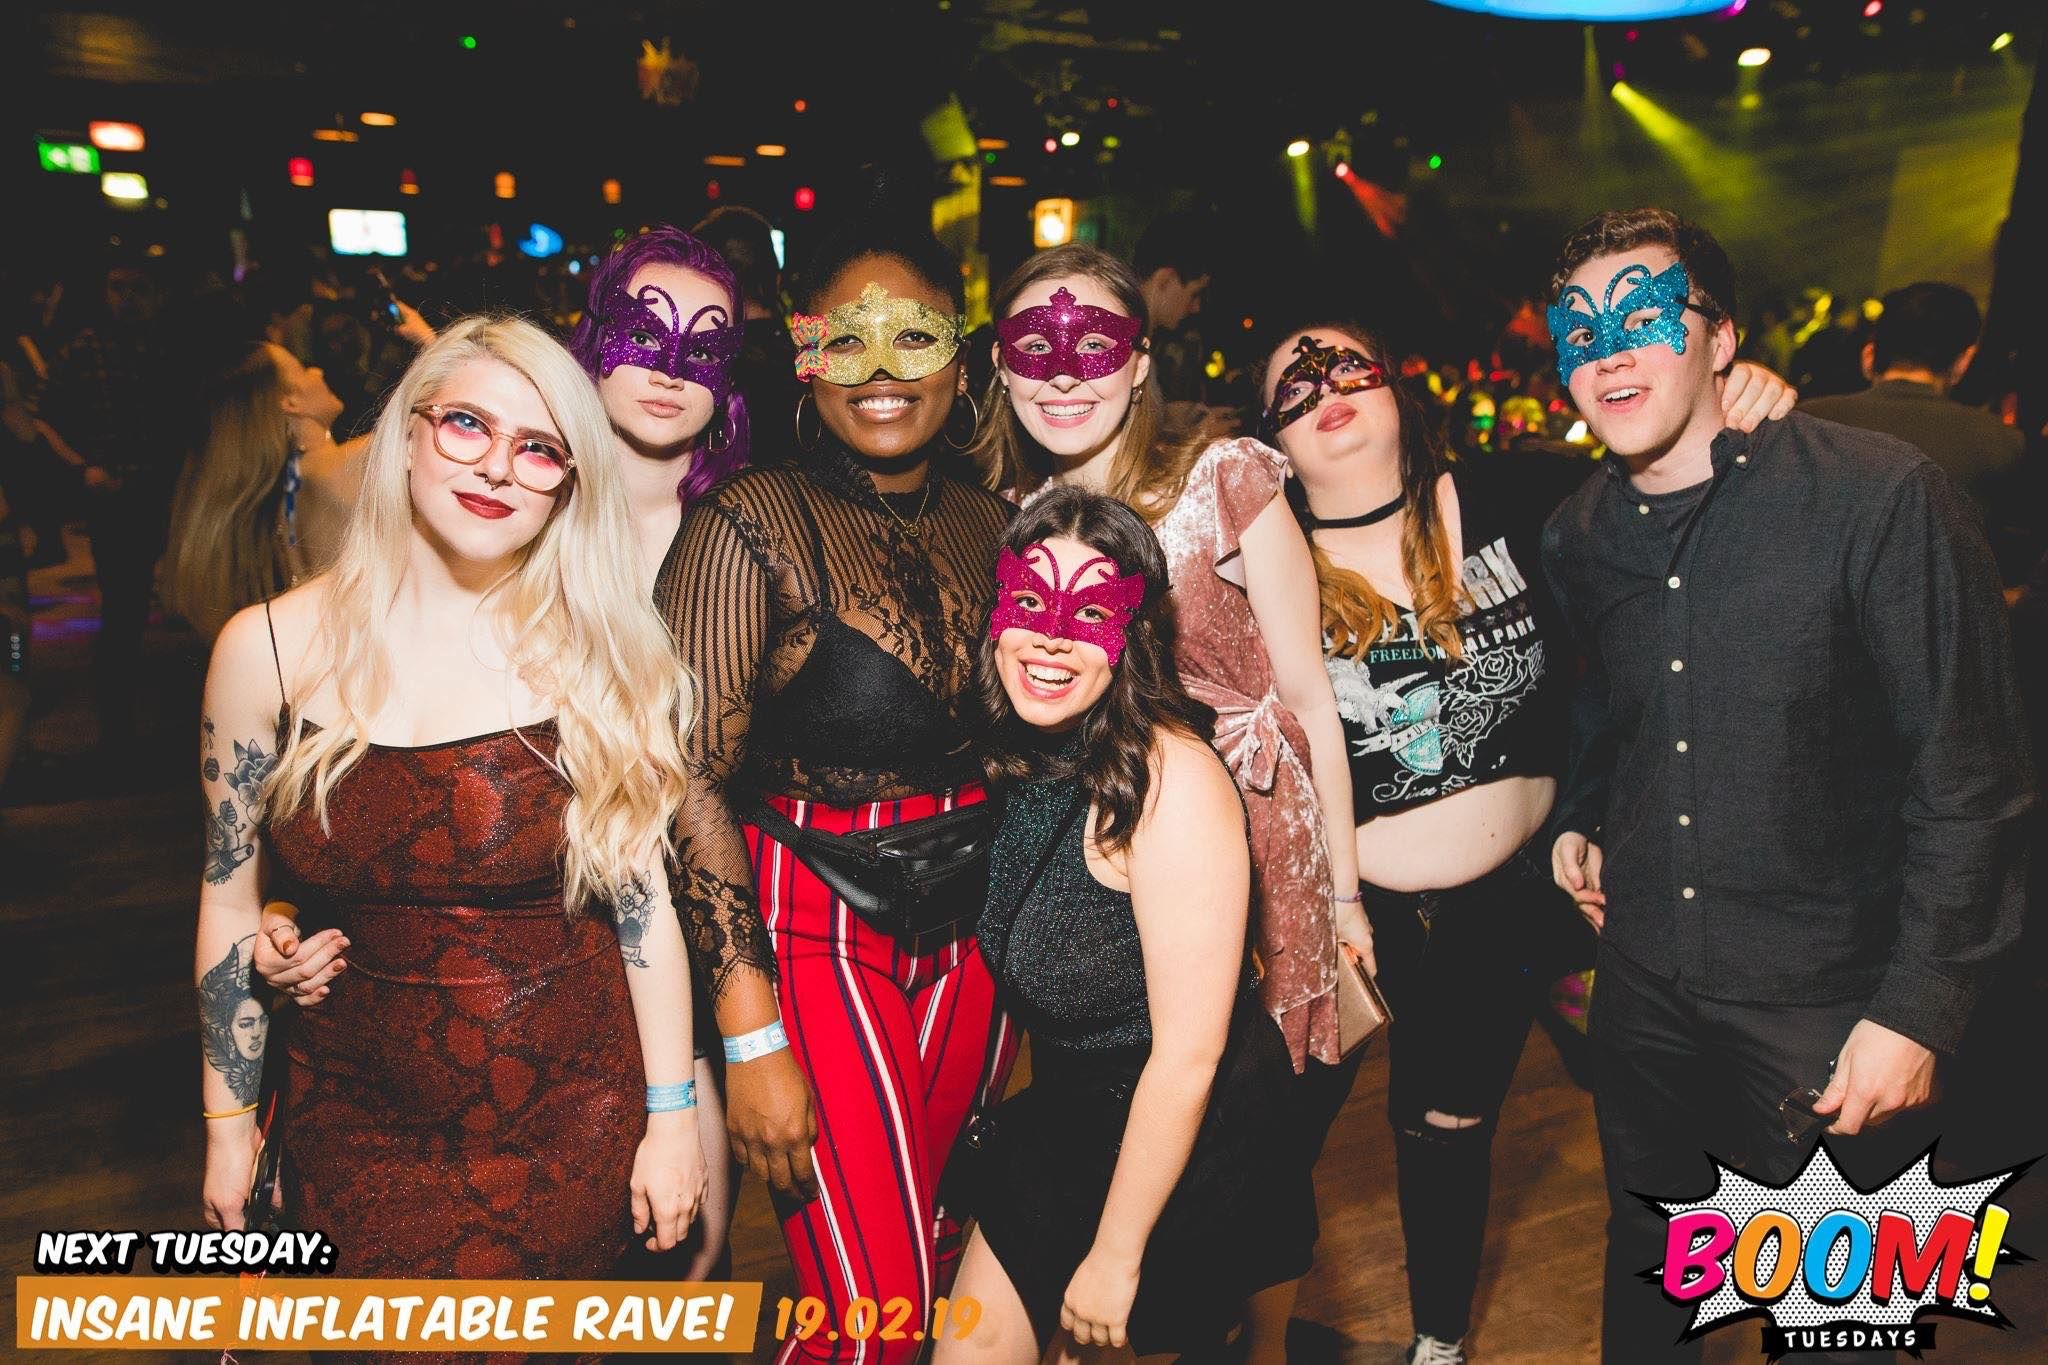 Image may contain: Disco, Accessory, Sunglasses, Accessories, Apparel, Clothing, Shoe, Footwear, Night Club, Club, Party, Person, Human